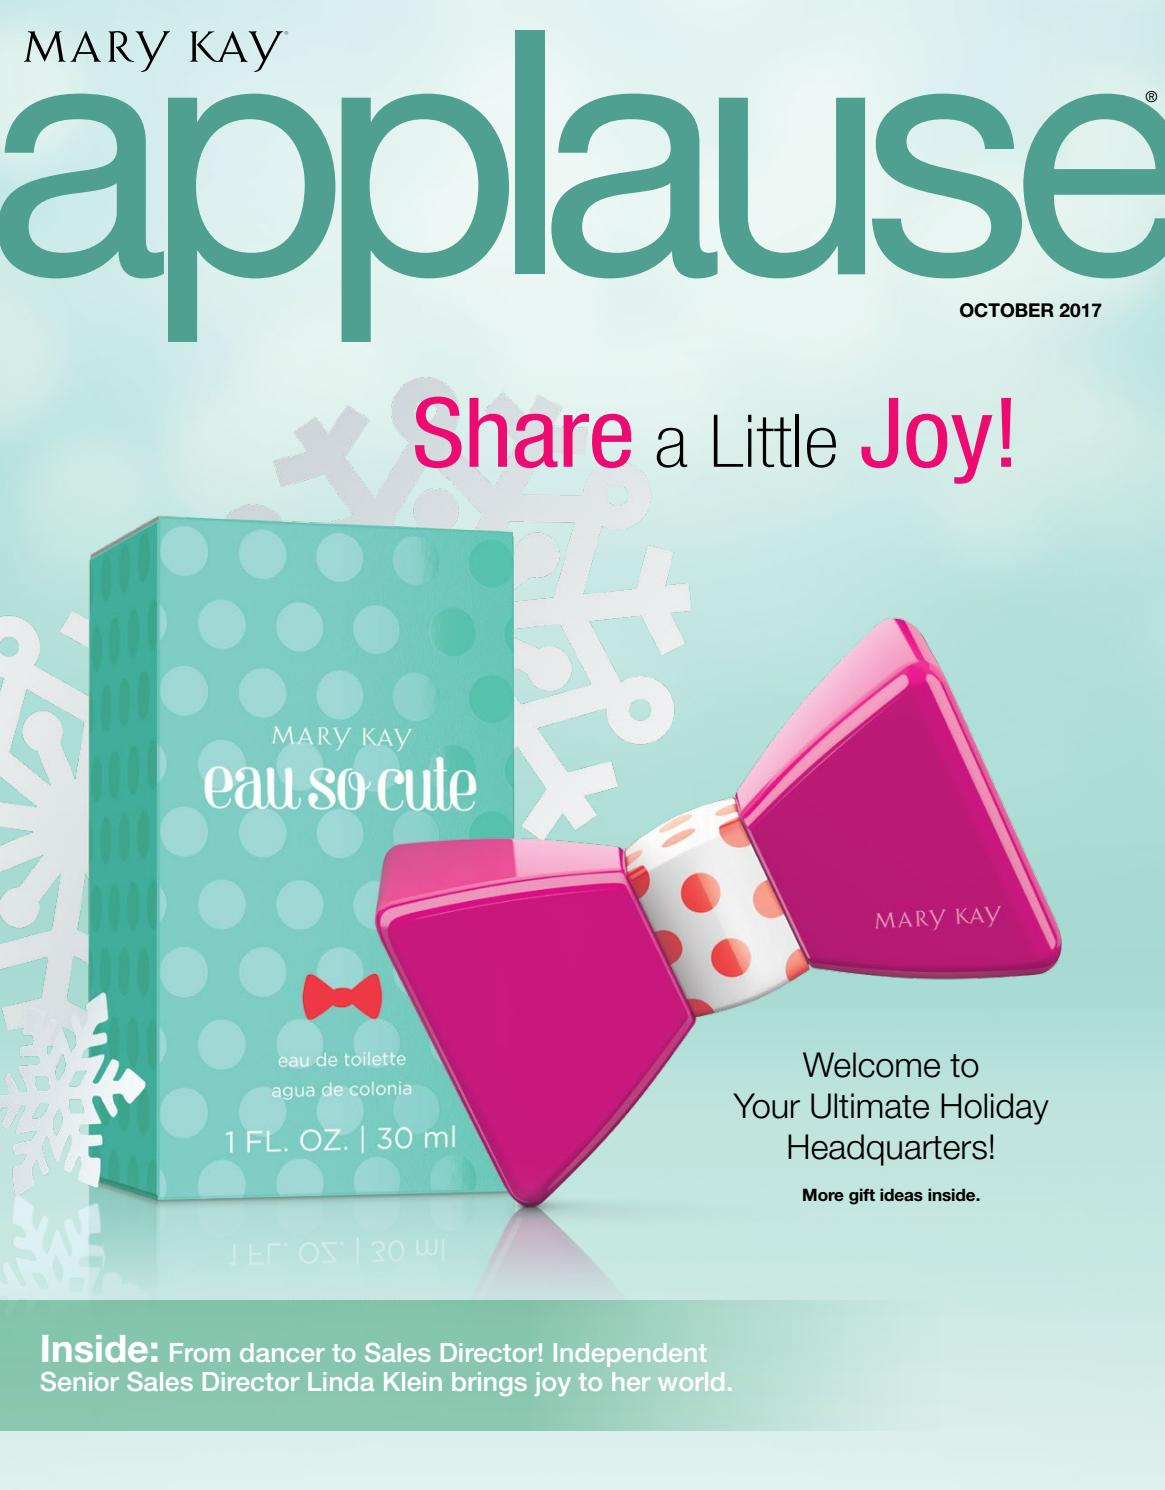 Mary kay online agreement on intouch - Mary Kay Online Agreement On Intouch 38